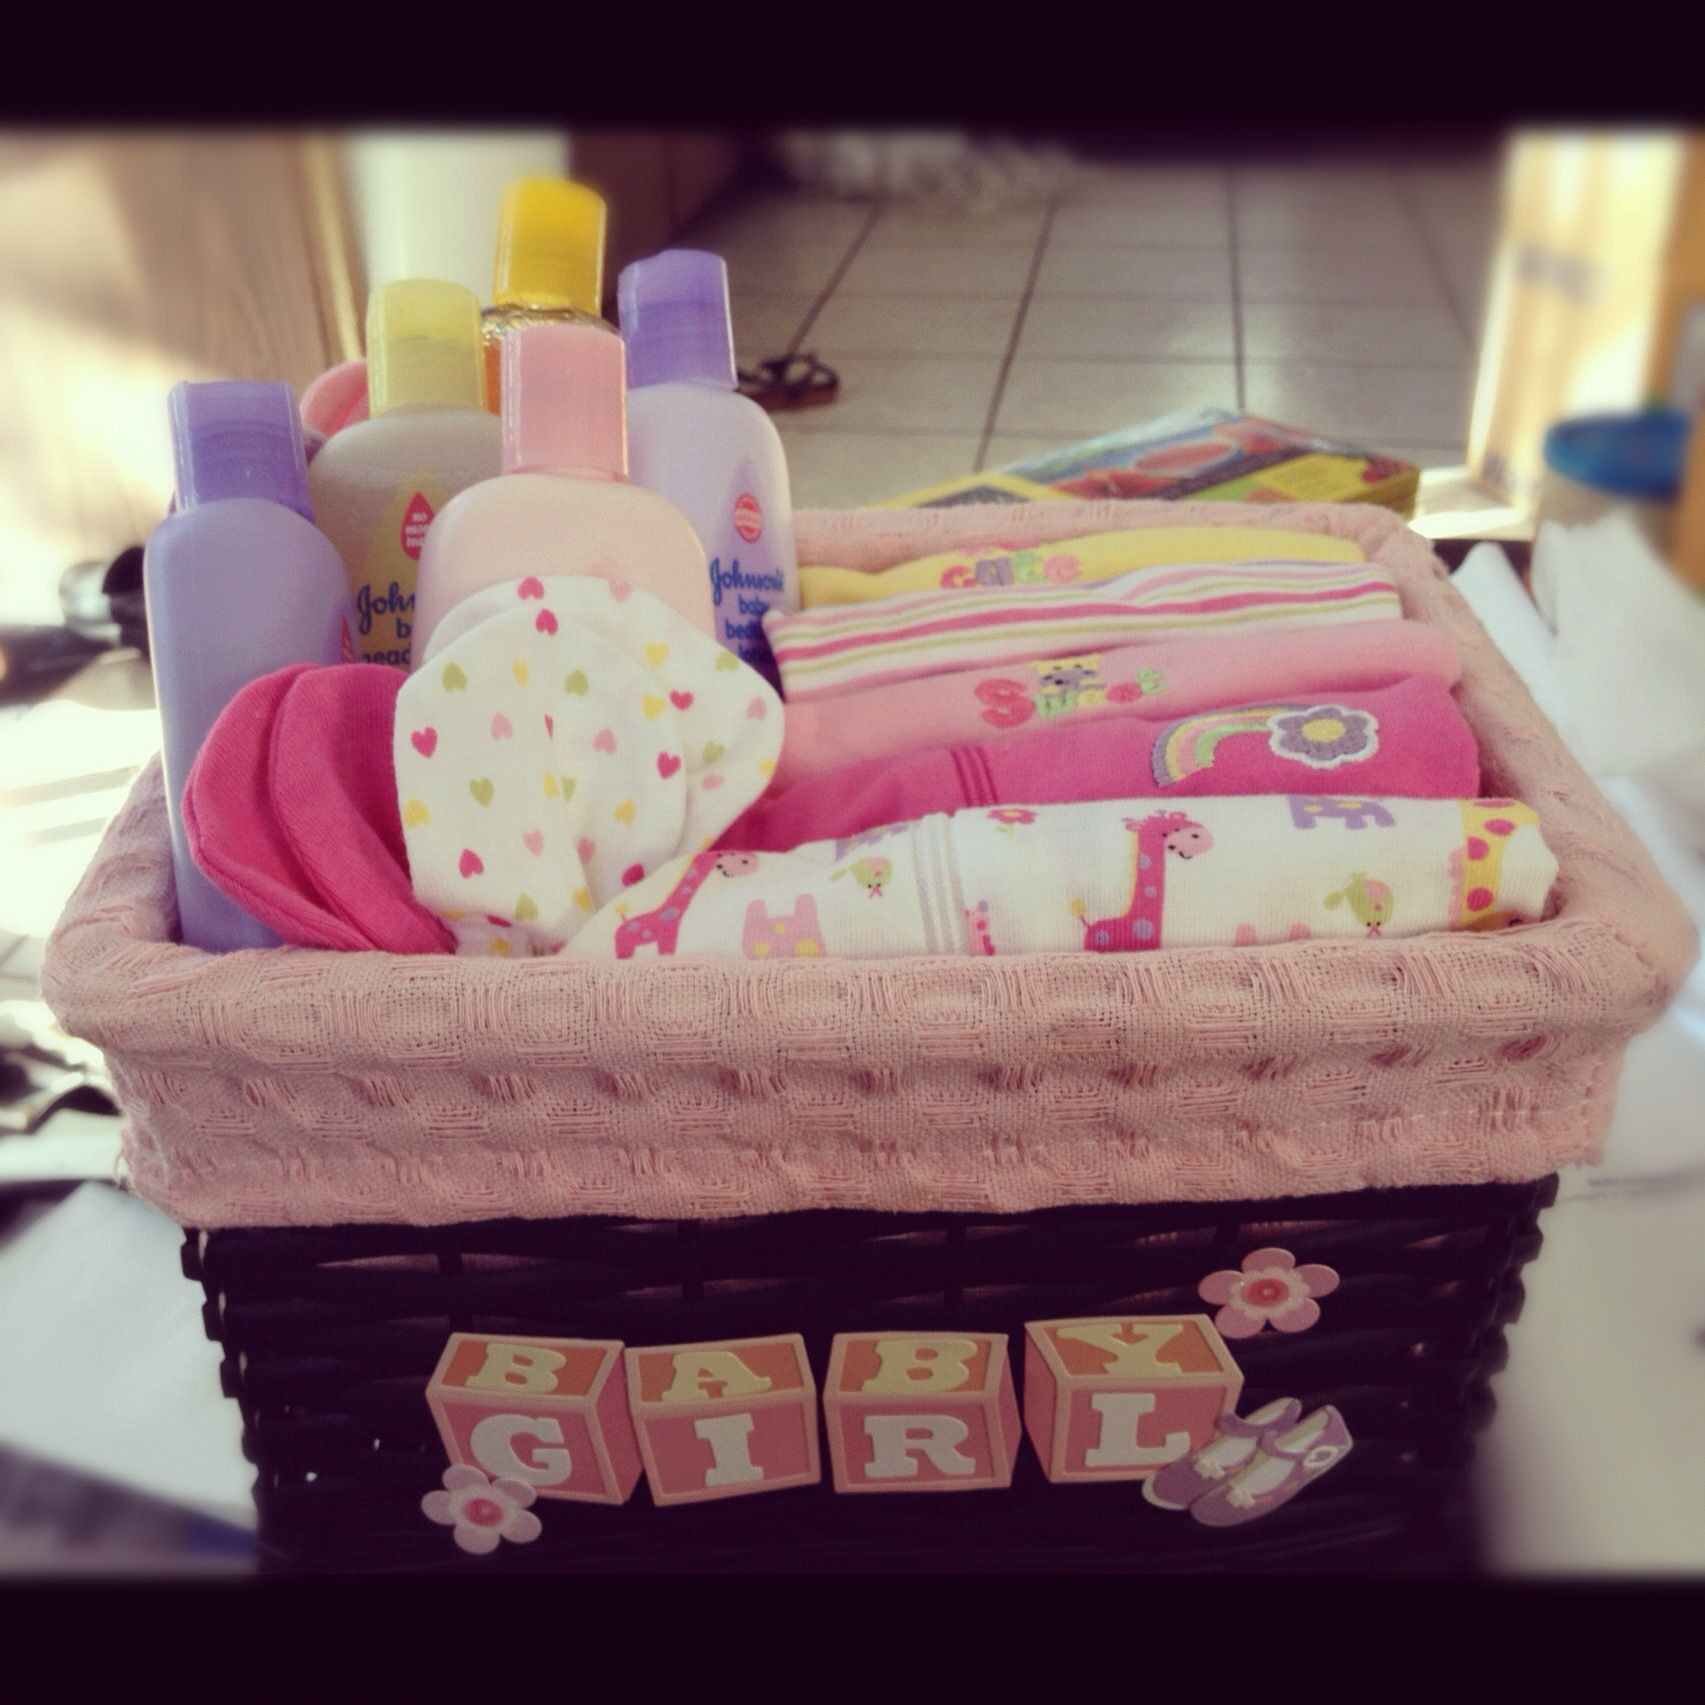 Best ideas about Baby Girl Gift Basket Ideas . Save or Pin DIY Baby Shower Gift Basket Ideas for Girls Now.